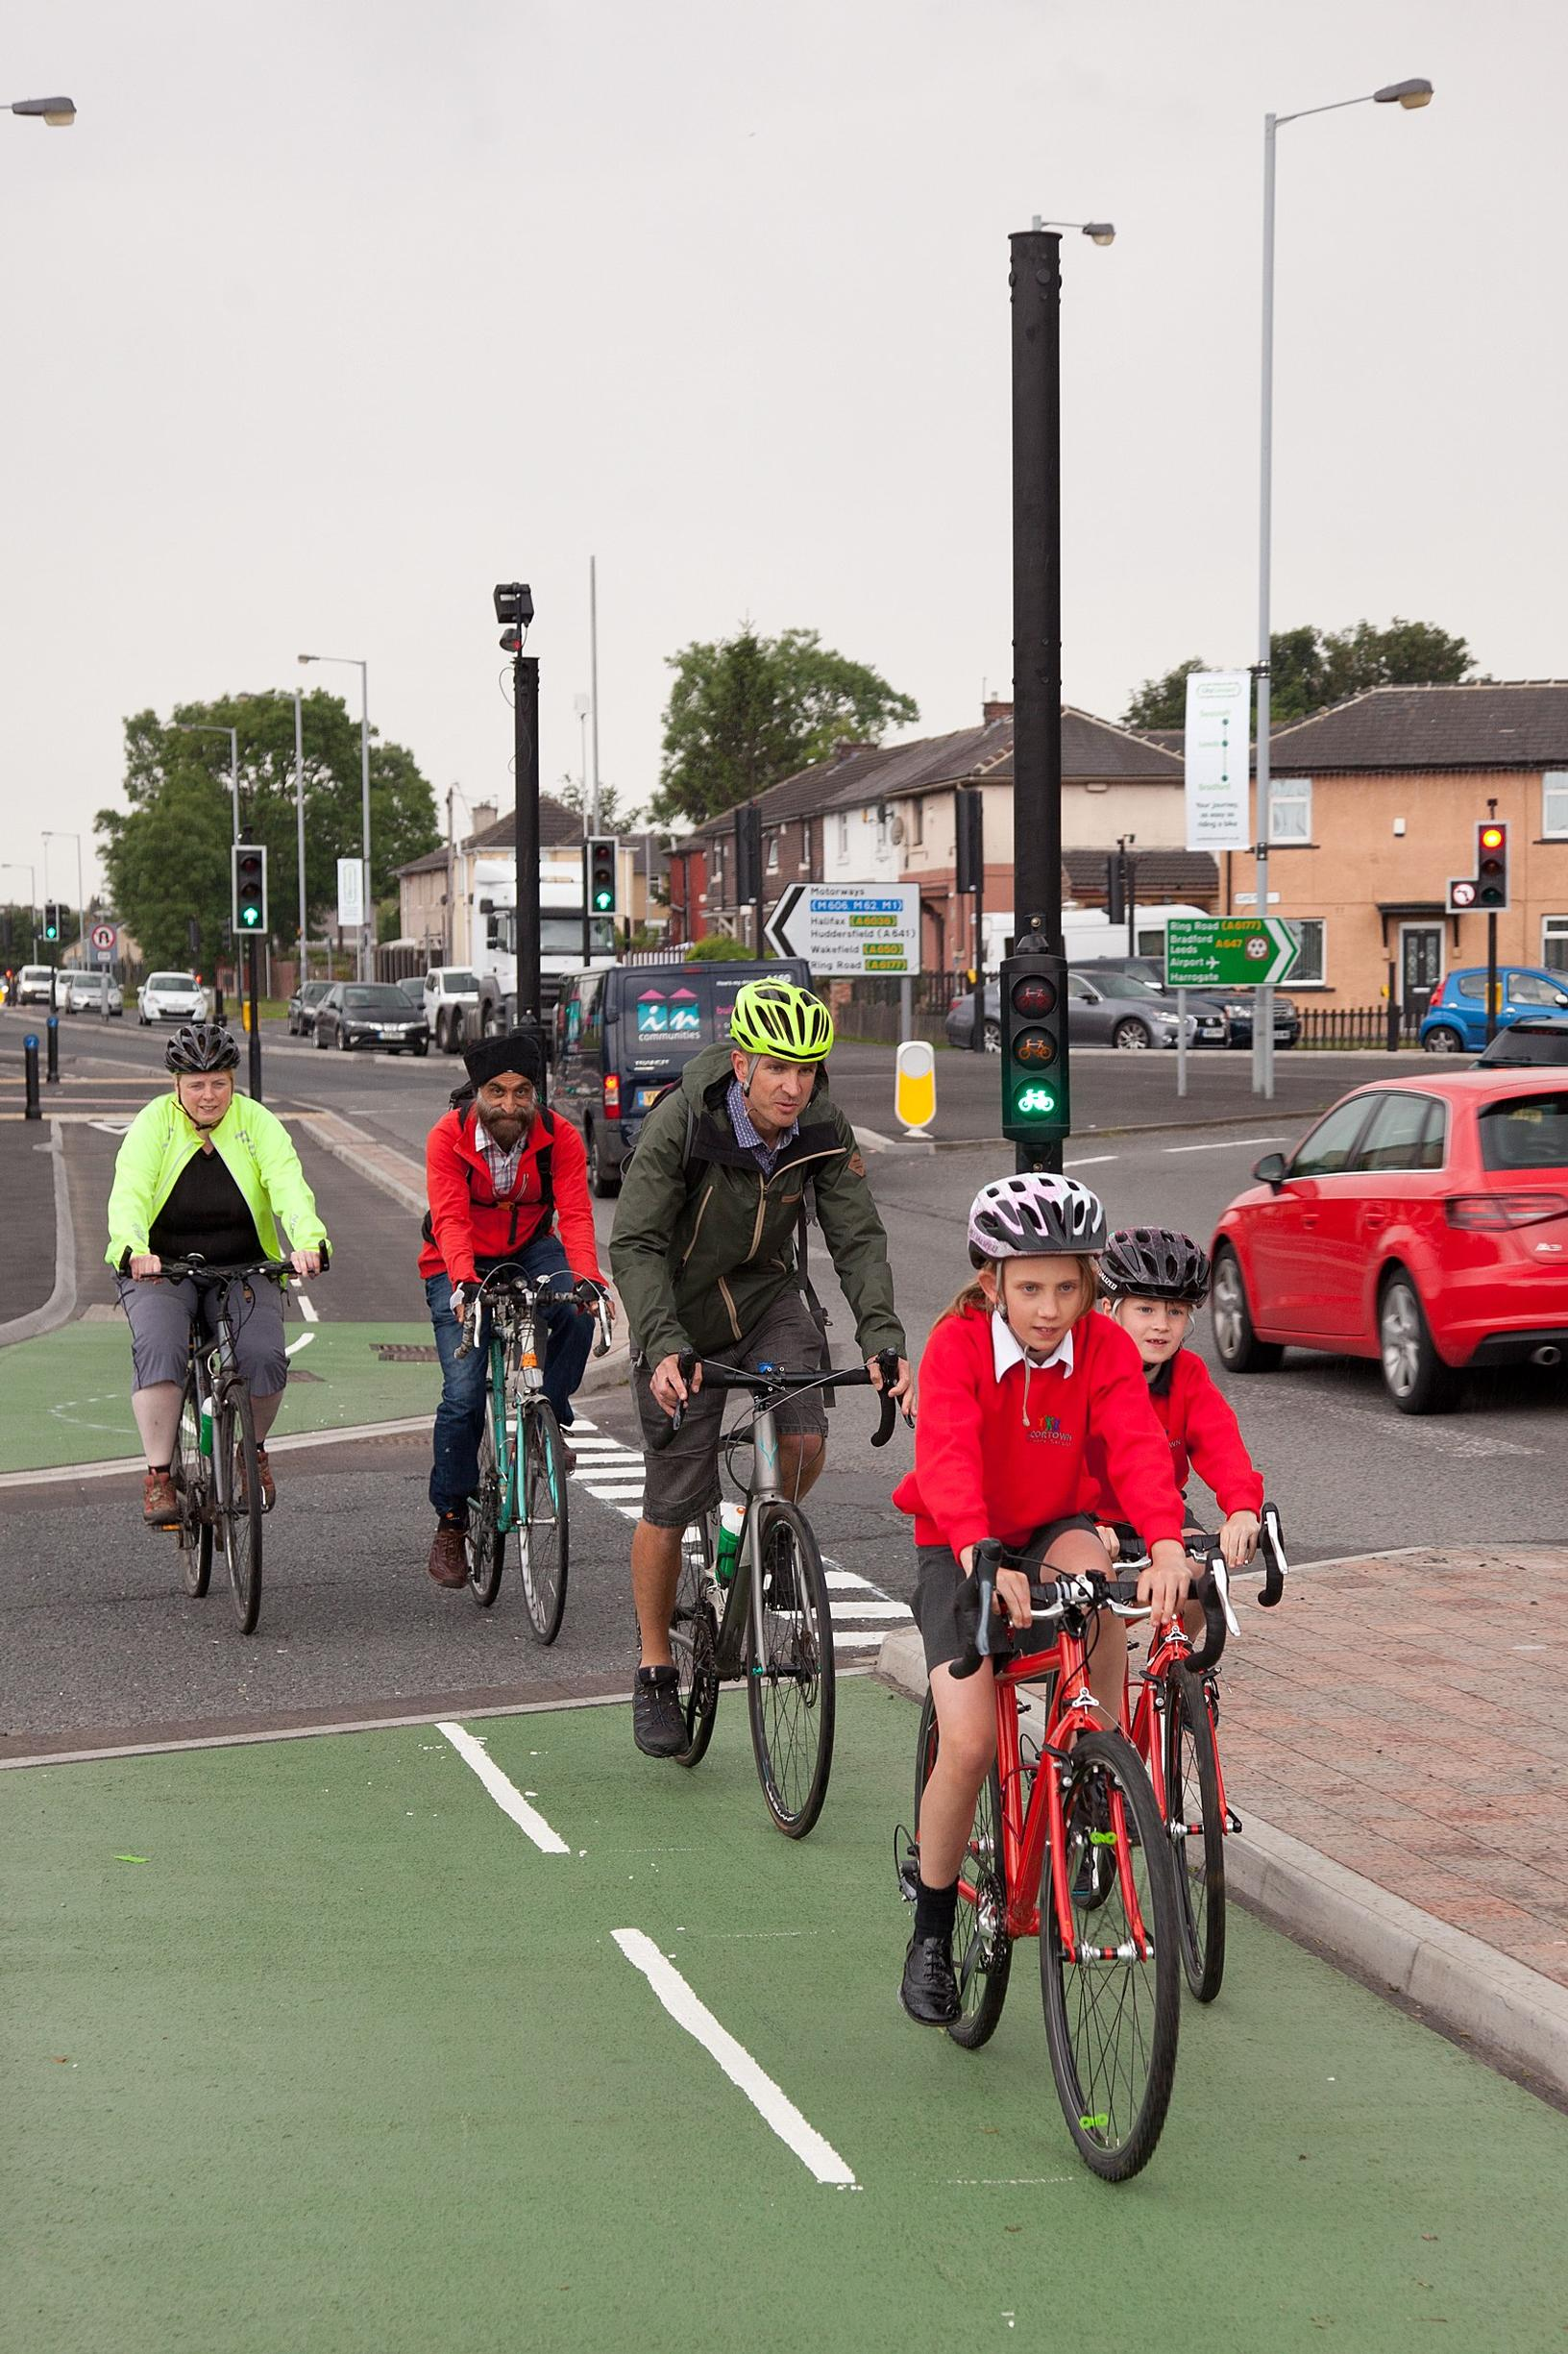 The Leeds to Bradford Cycle Superhighway has created a safe corridor of travel, allowing people of all ages to cycle and walk away from traffic